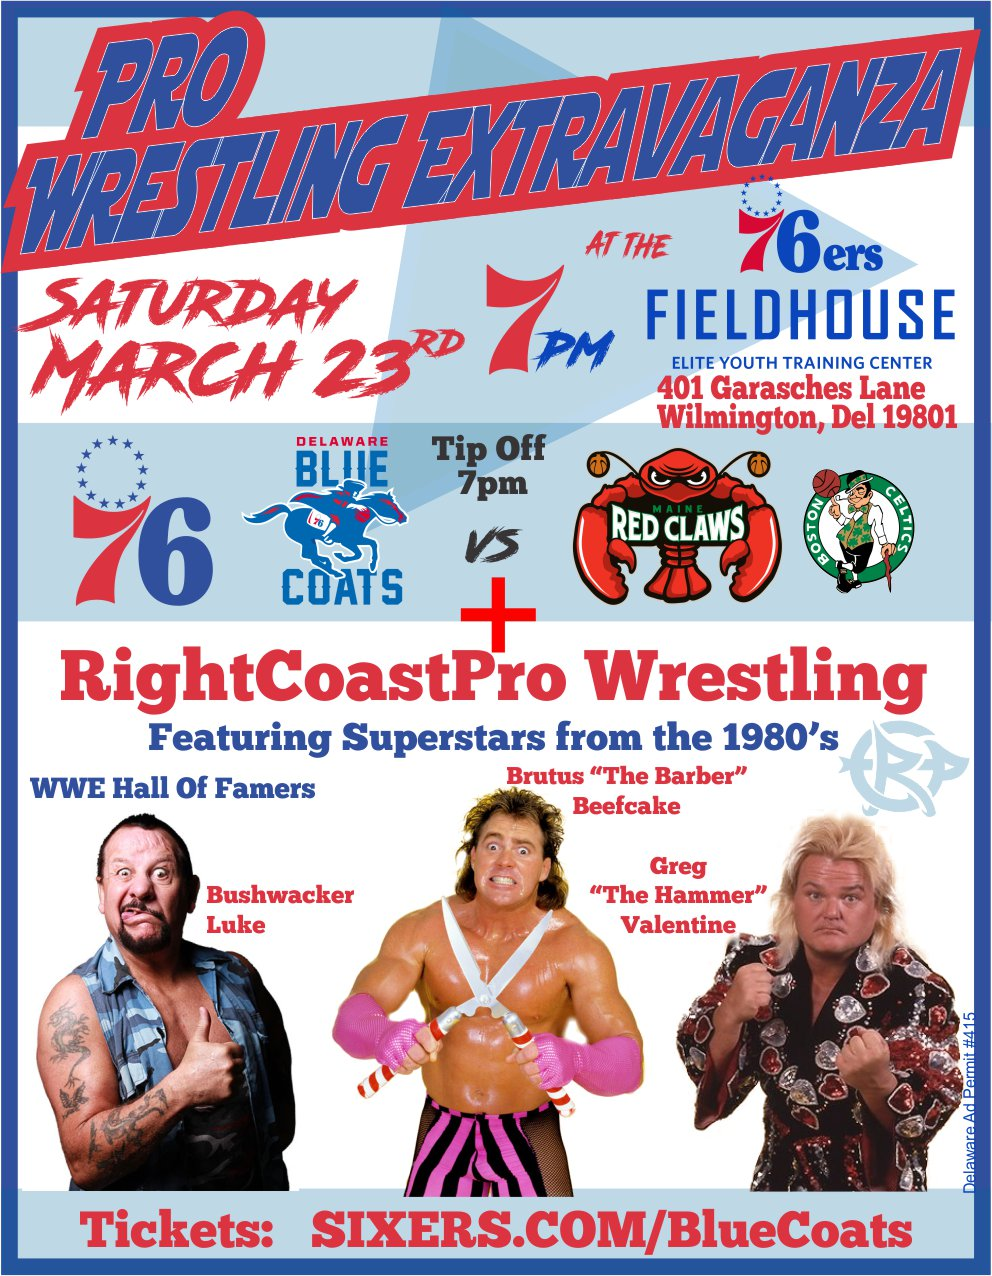 Pro Wrestling Extravaganza set for March 23